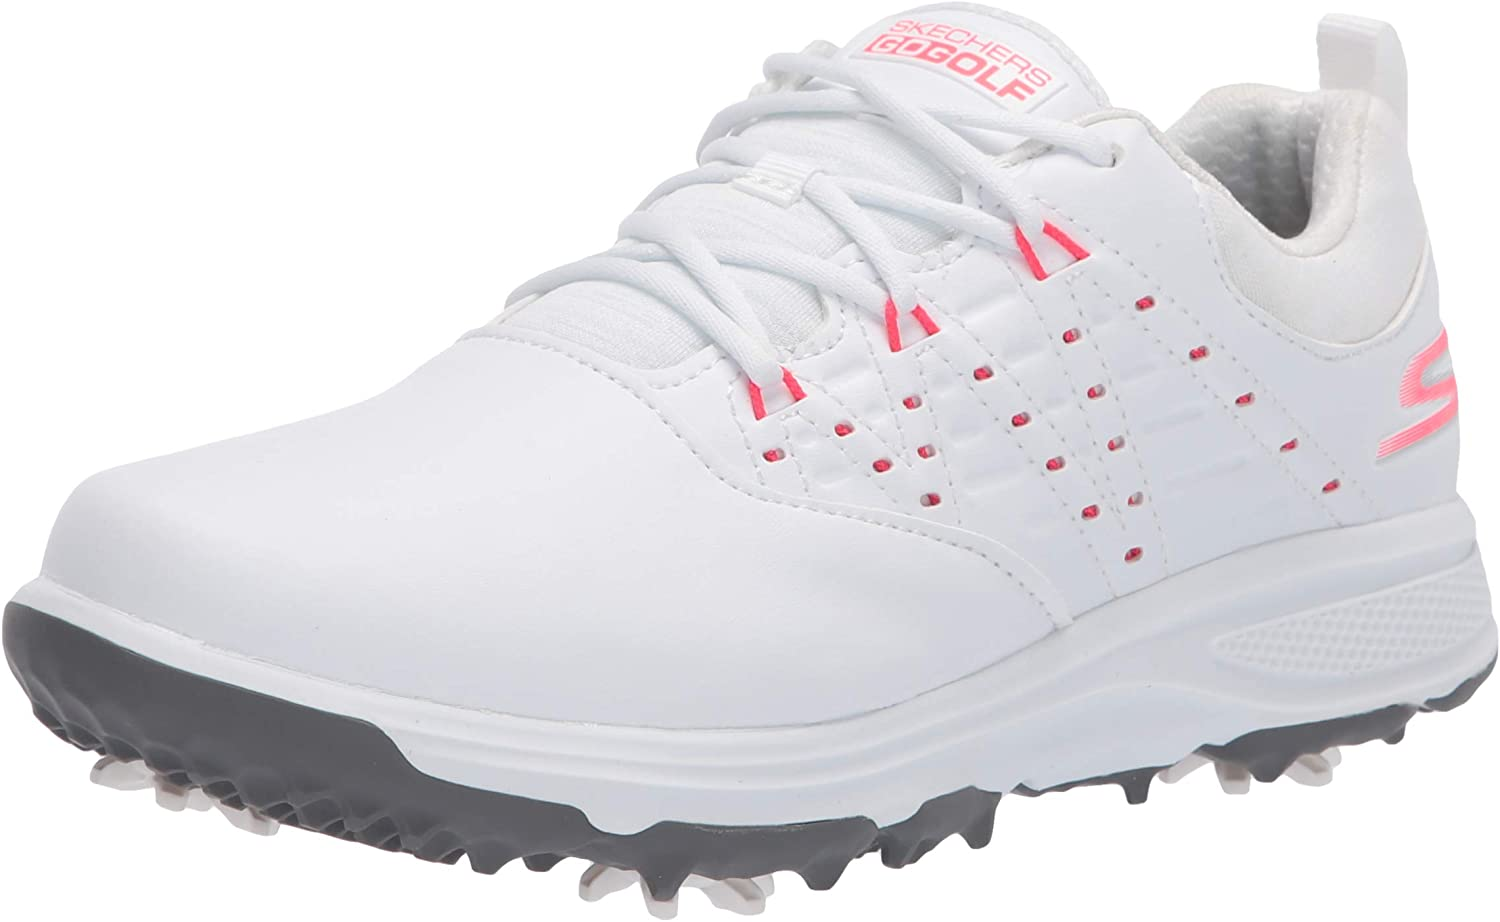 Skechers Women's Go Pro 2 Spiked Waterproof Golf Shoe